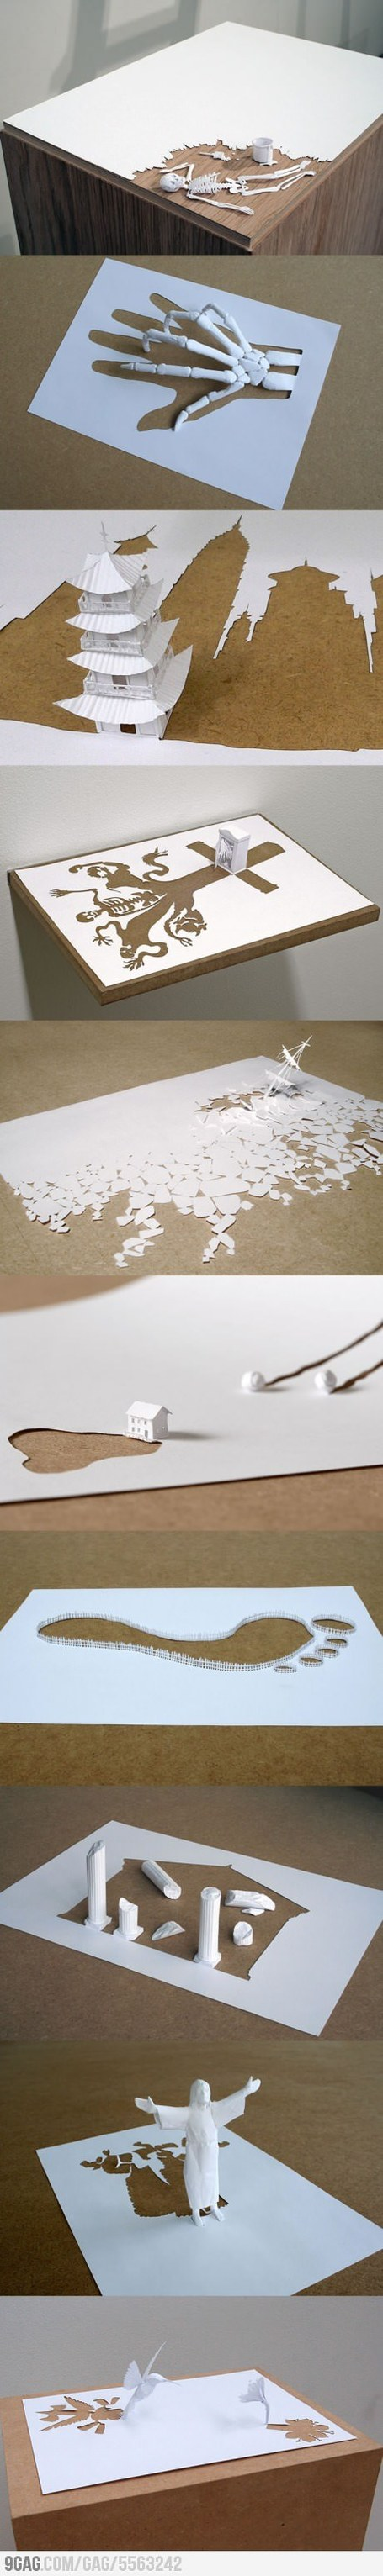 Paper Art by Peter Callesen | Made with (and of) Paper | Scoop.it